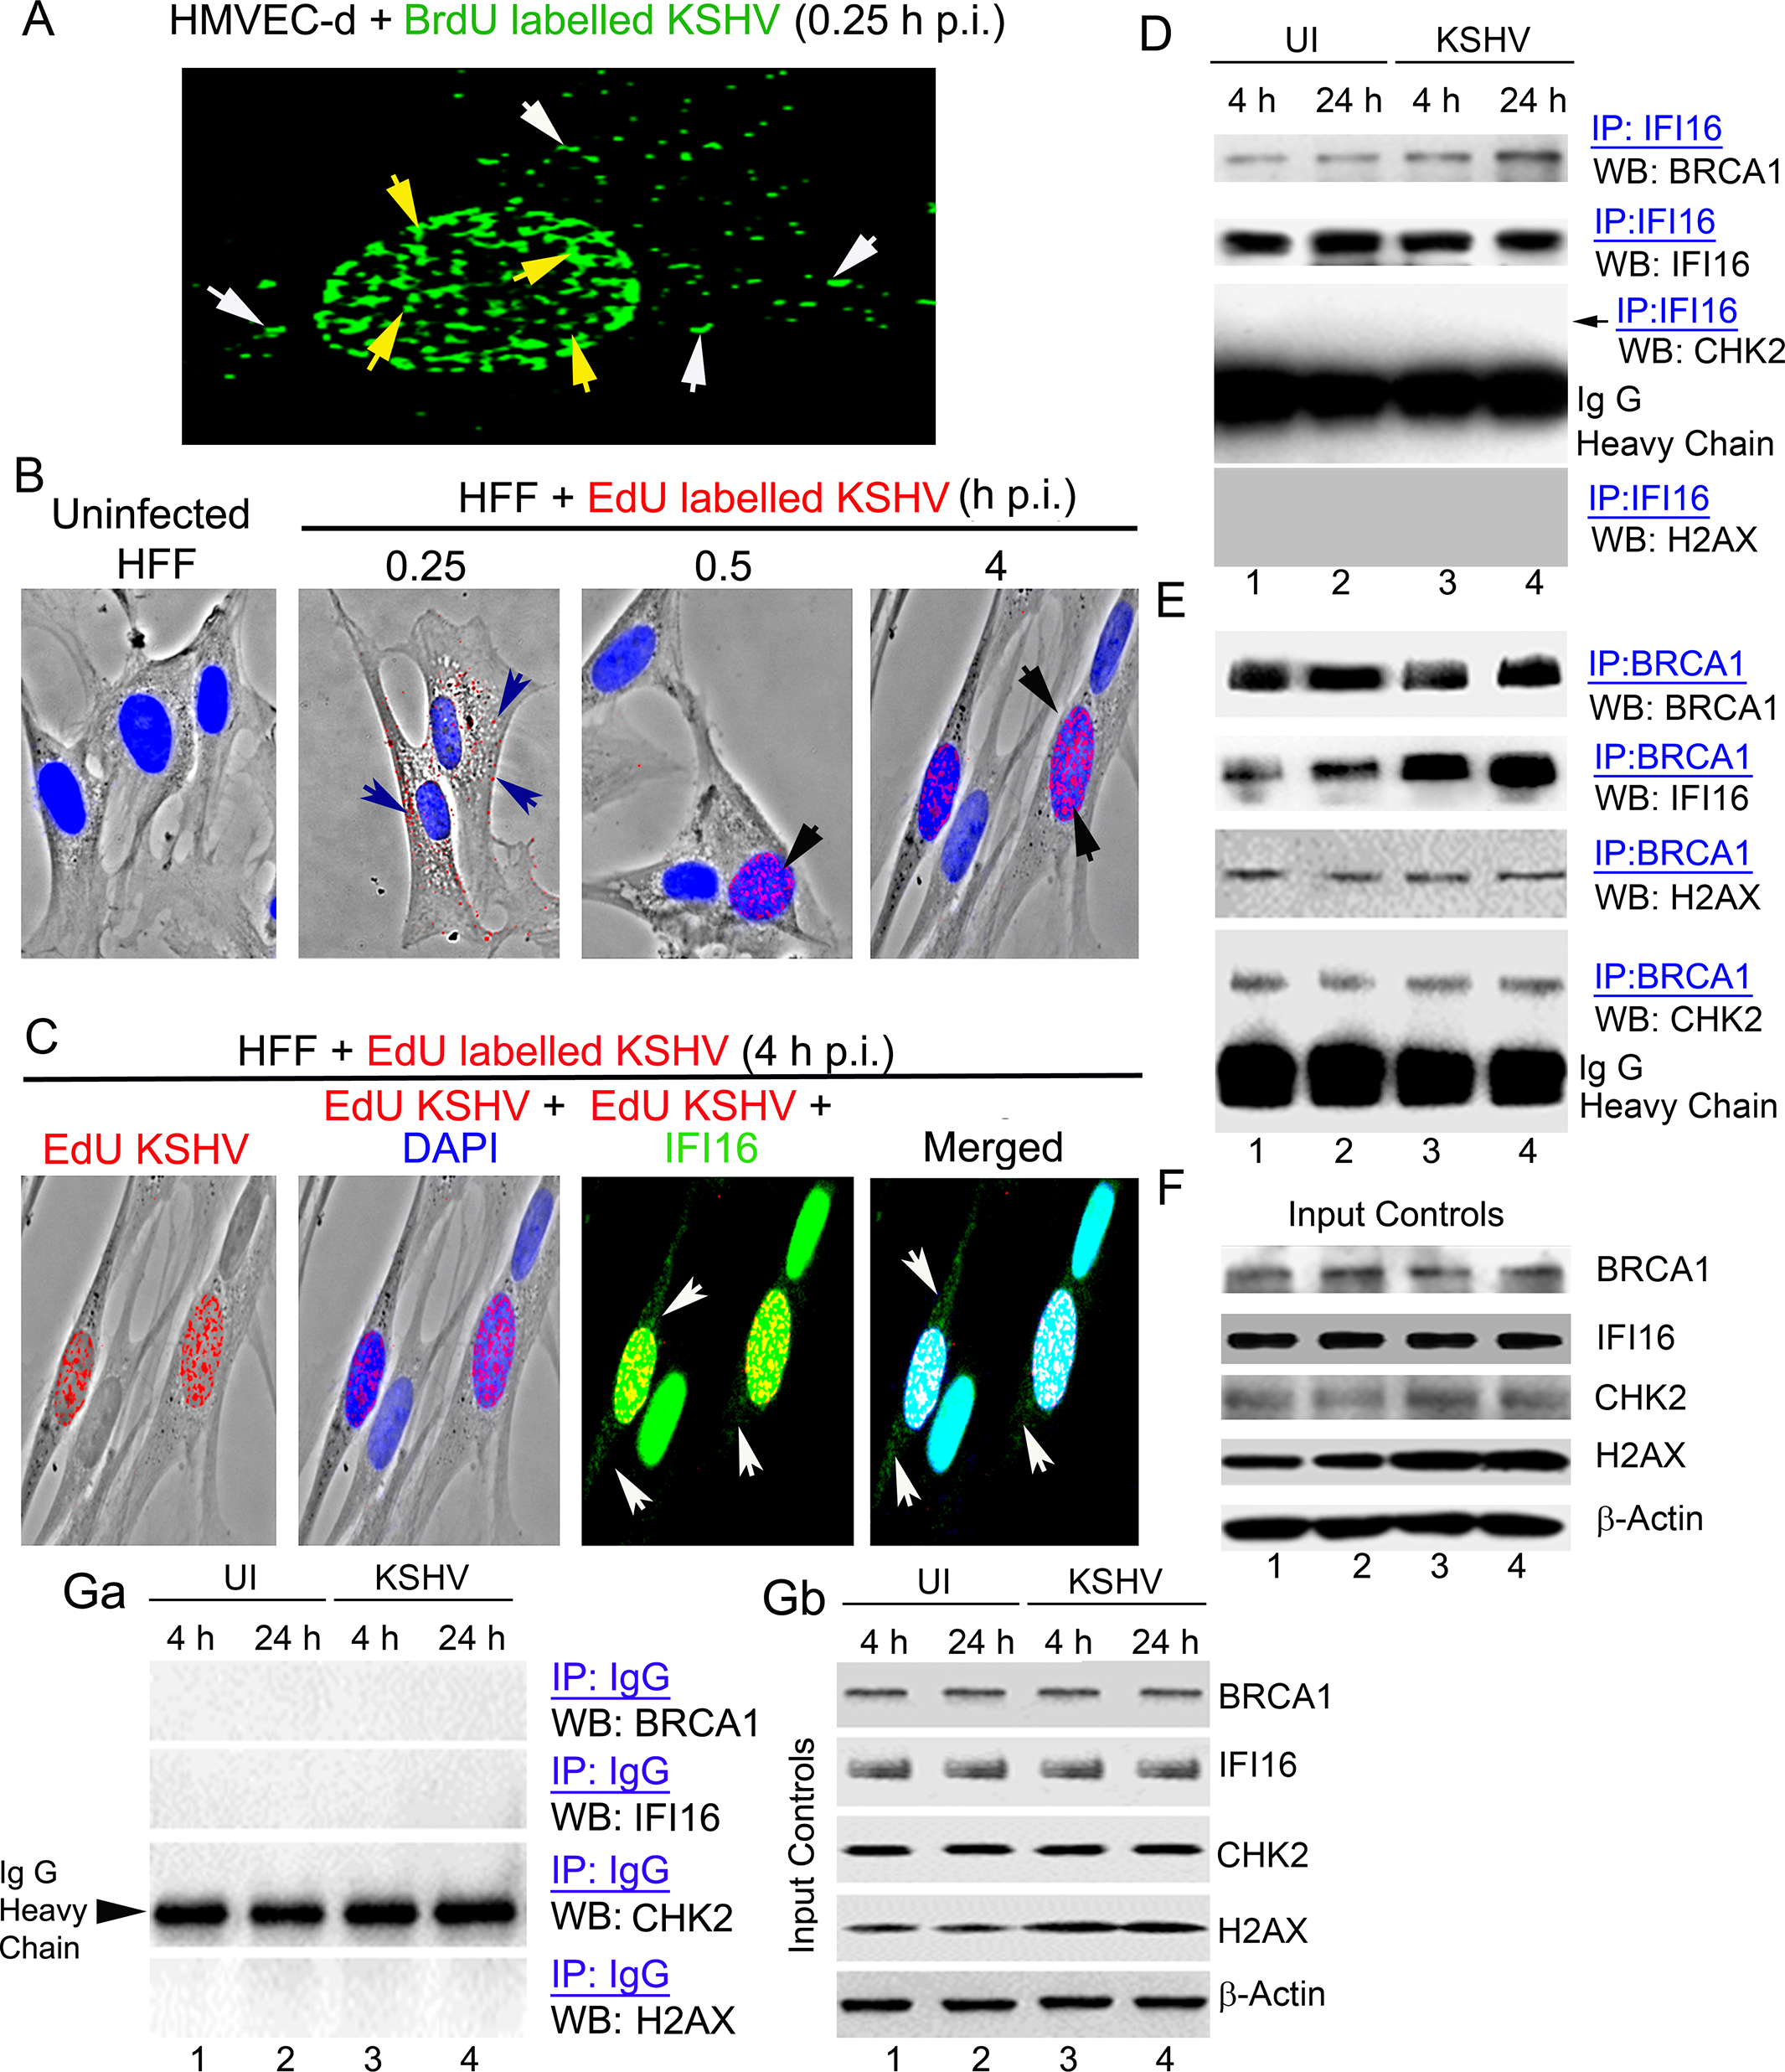 Enhanced interaction of IFI16 with BRCA1 but not with other DNA damage response proteins during <i>de novo</i> KSHV infection.